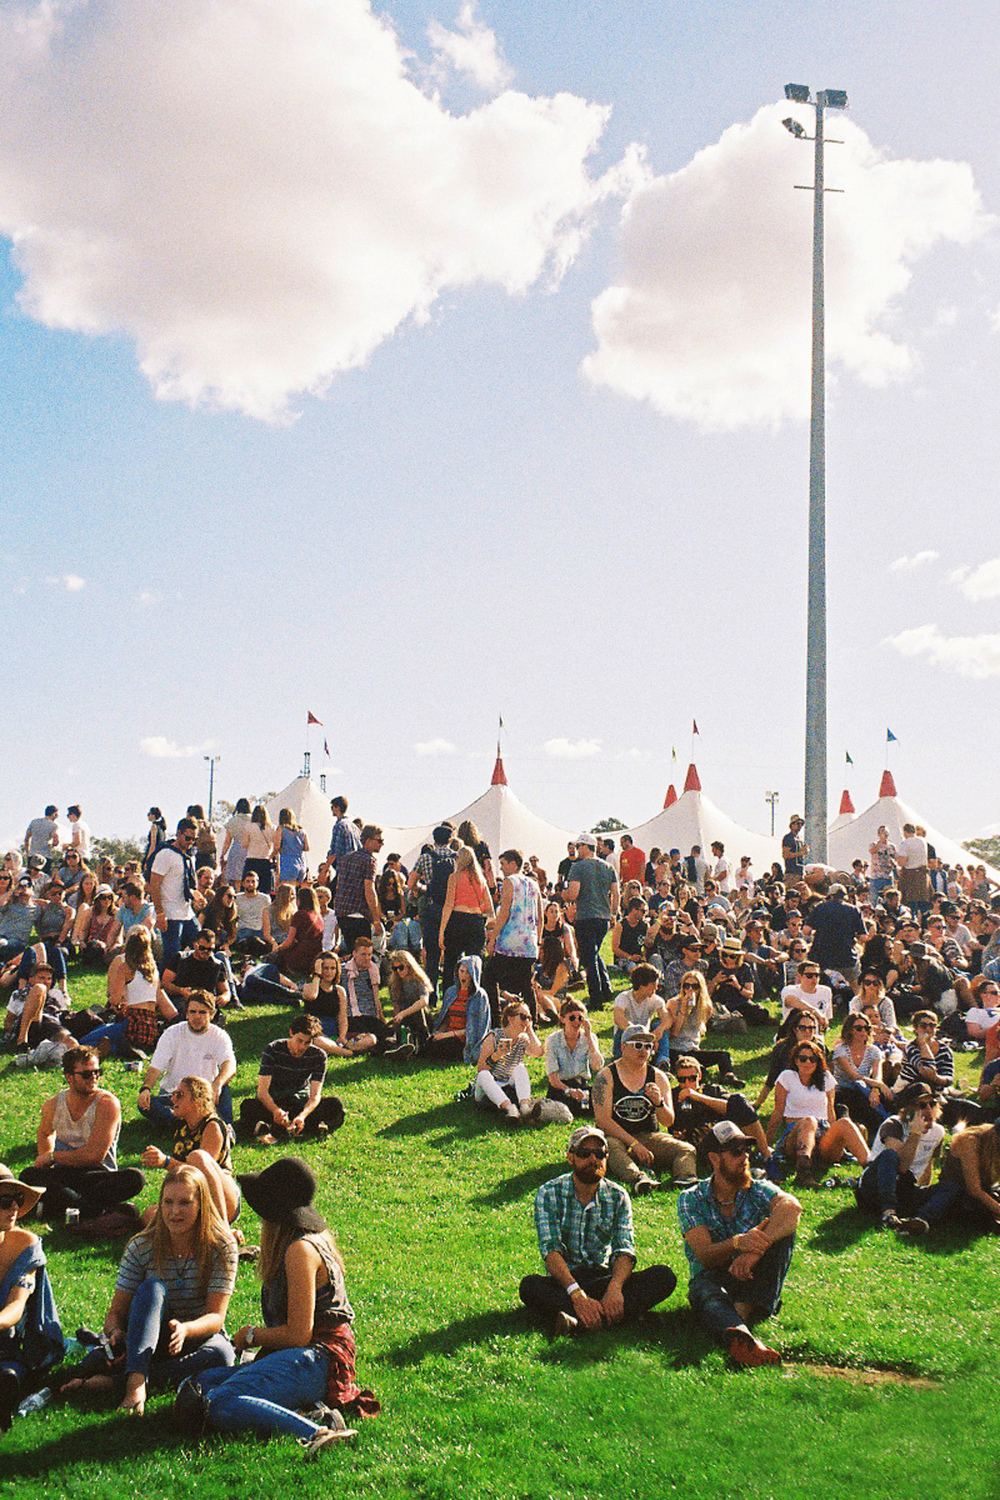 VOENA_GROOVIN_THE_MOO_CANBERRA_FILM_2015_35MM_PHOTOS-23.jpg